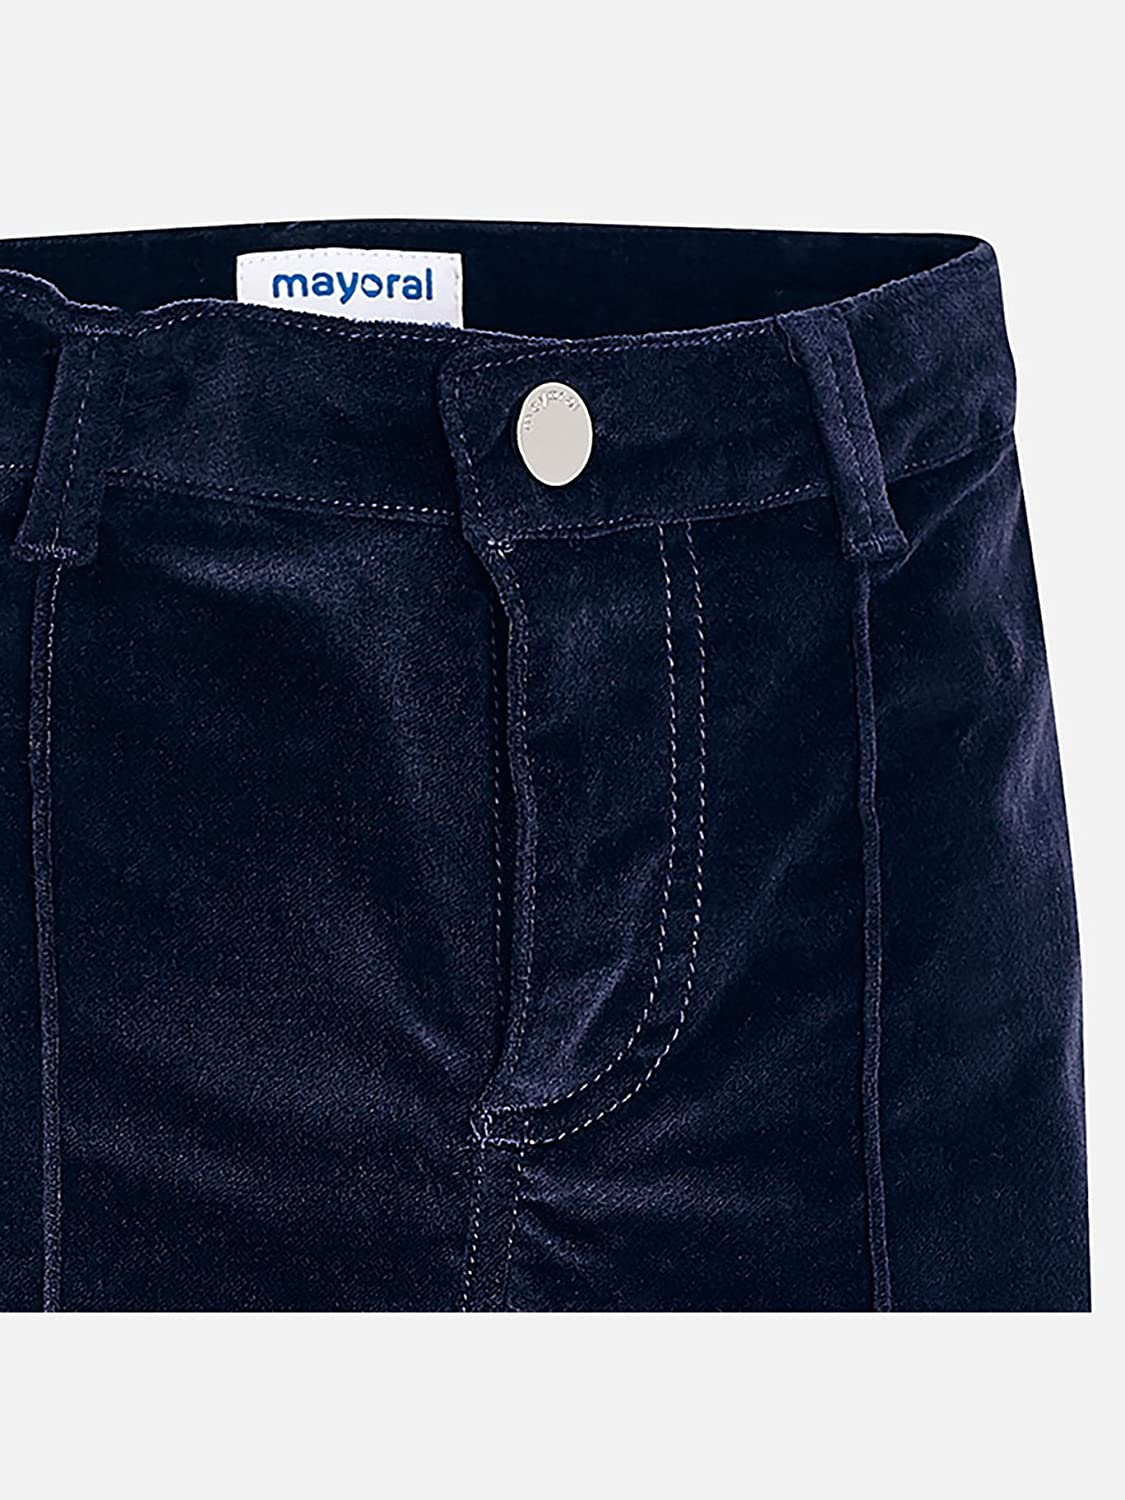 Long Trousers for Girls Navy 4552 Mayoral